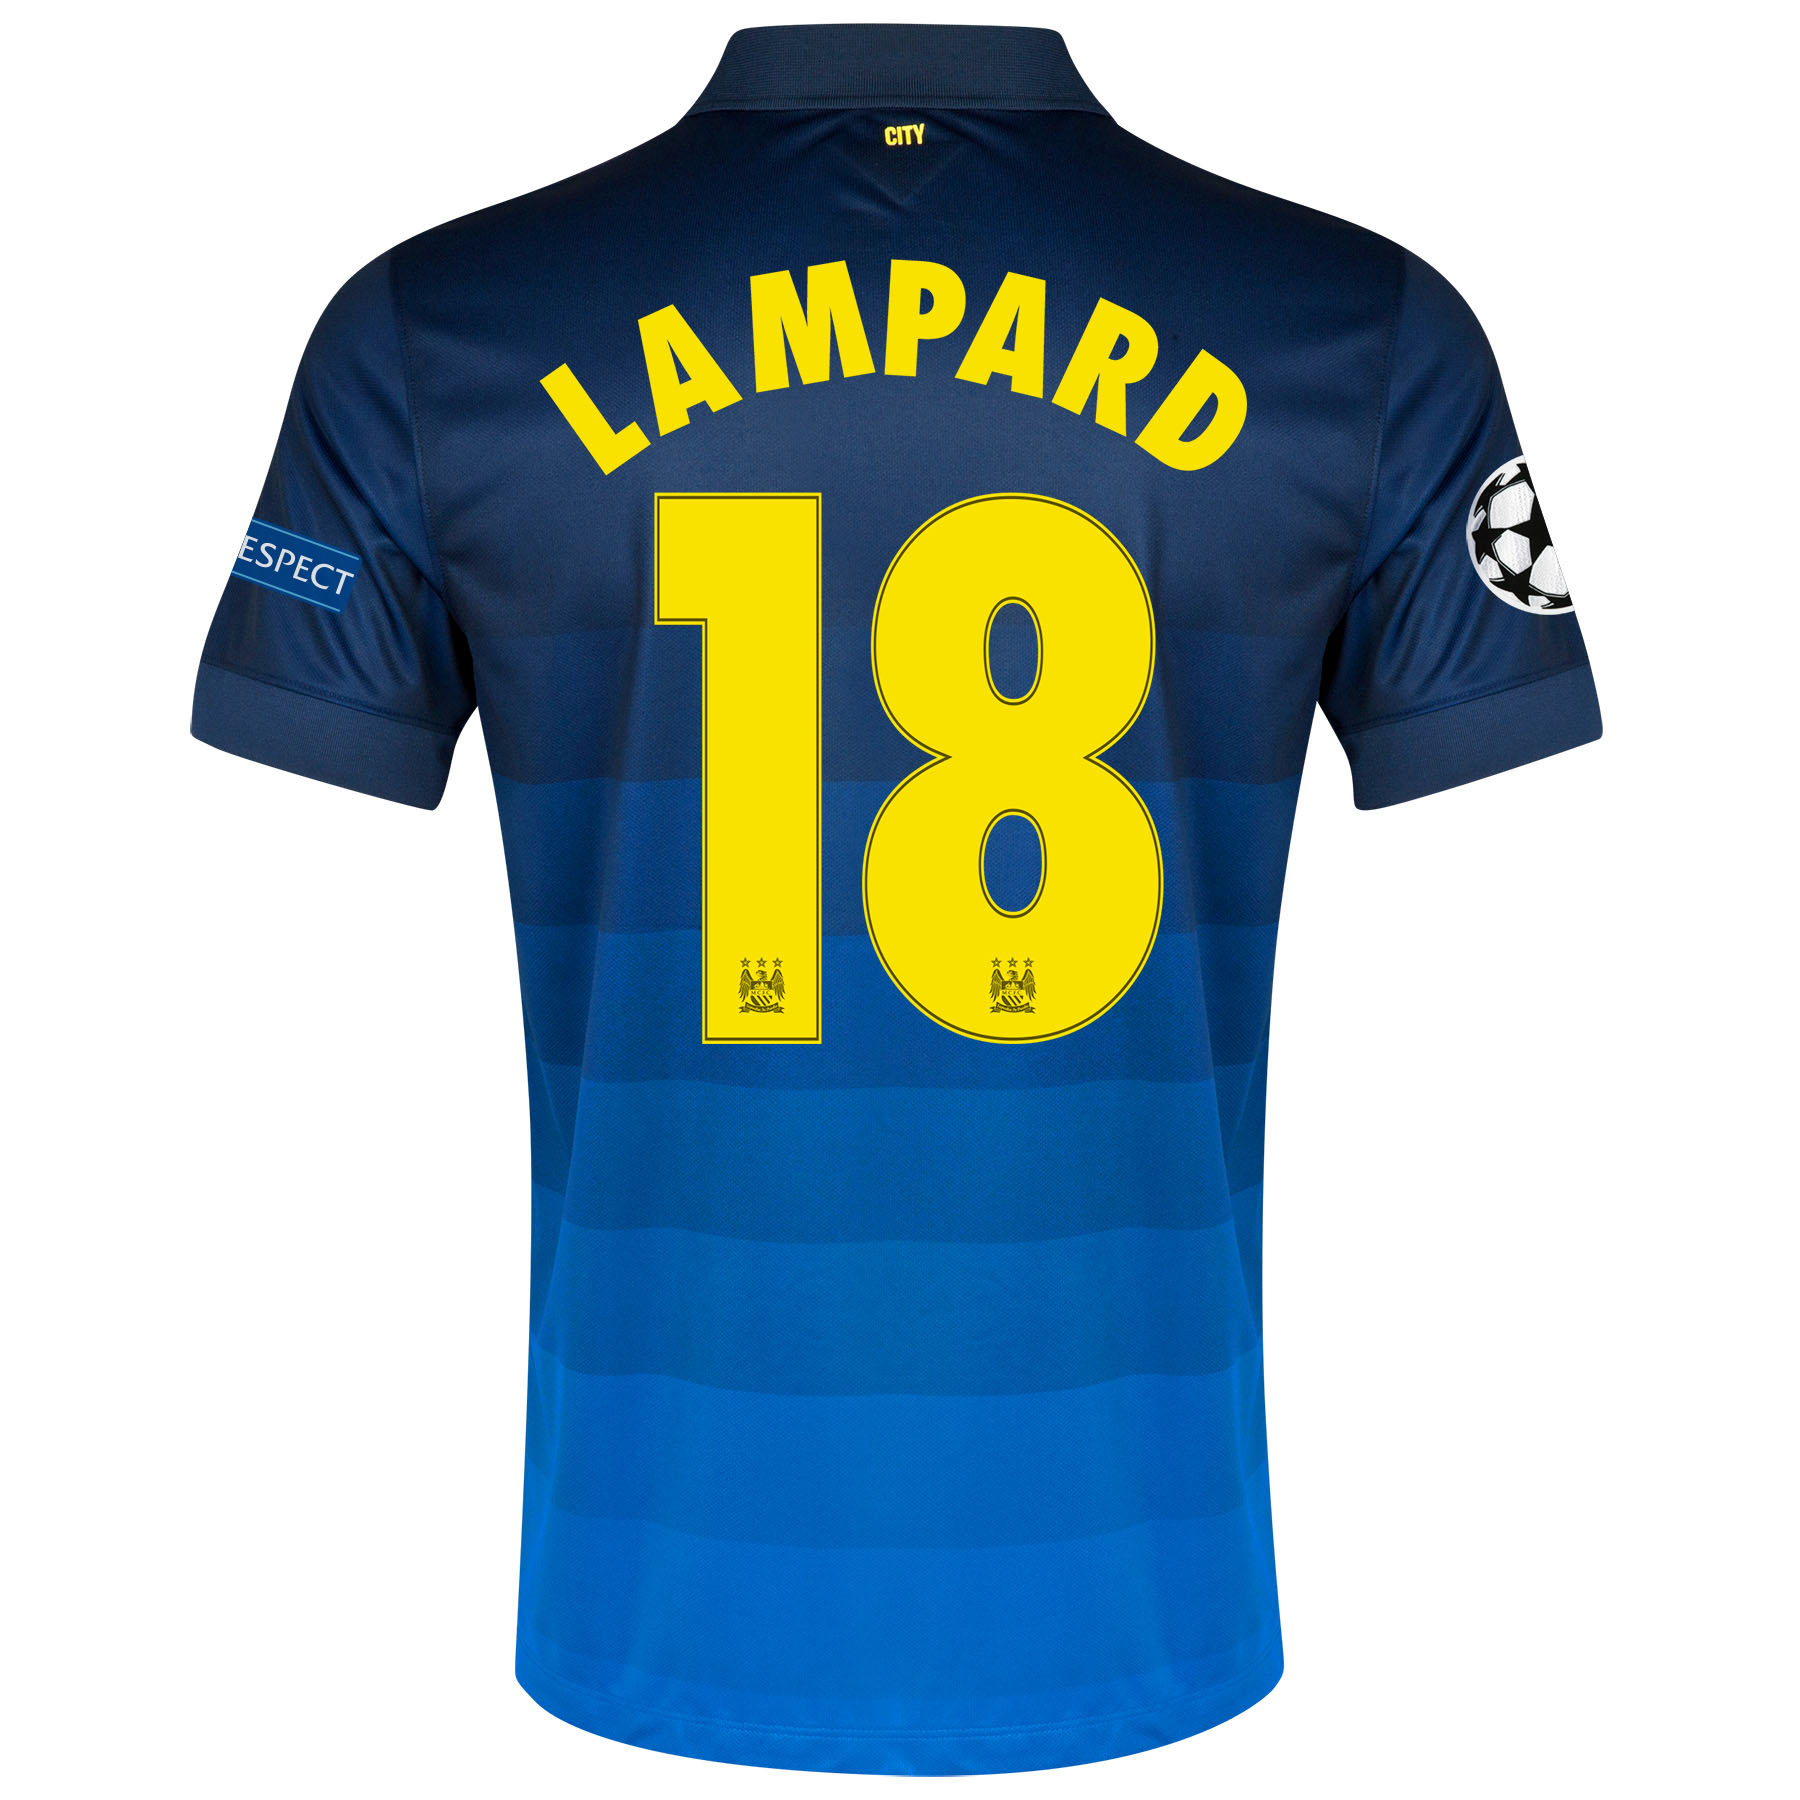 Manchester City UEFA Champions League Away Shirt 2014/15 with Lampard 18 printing